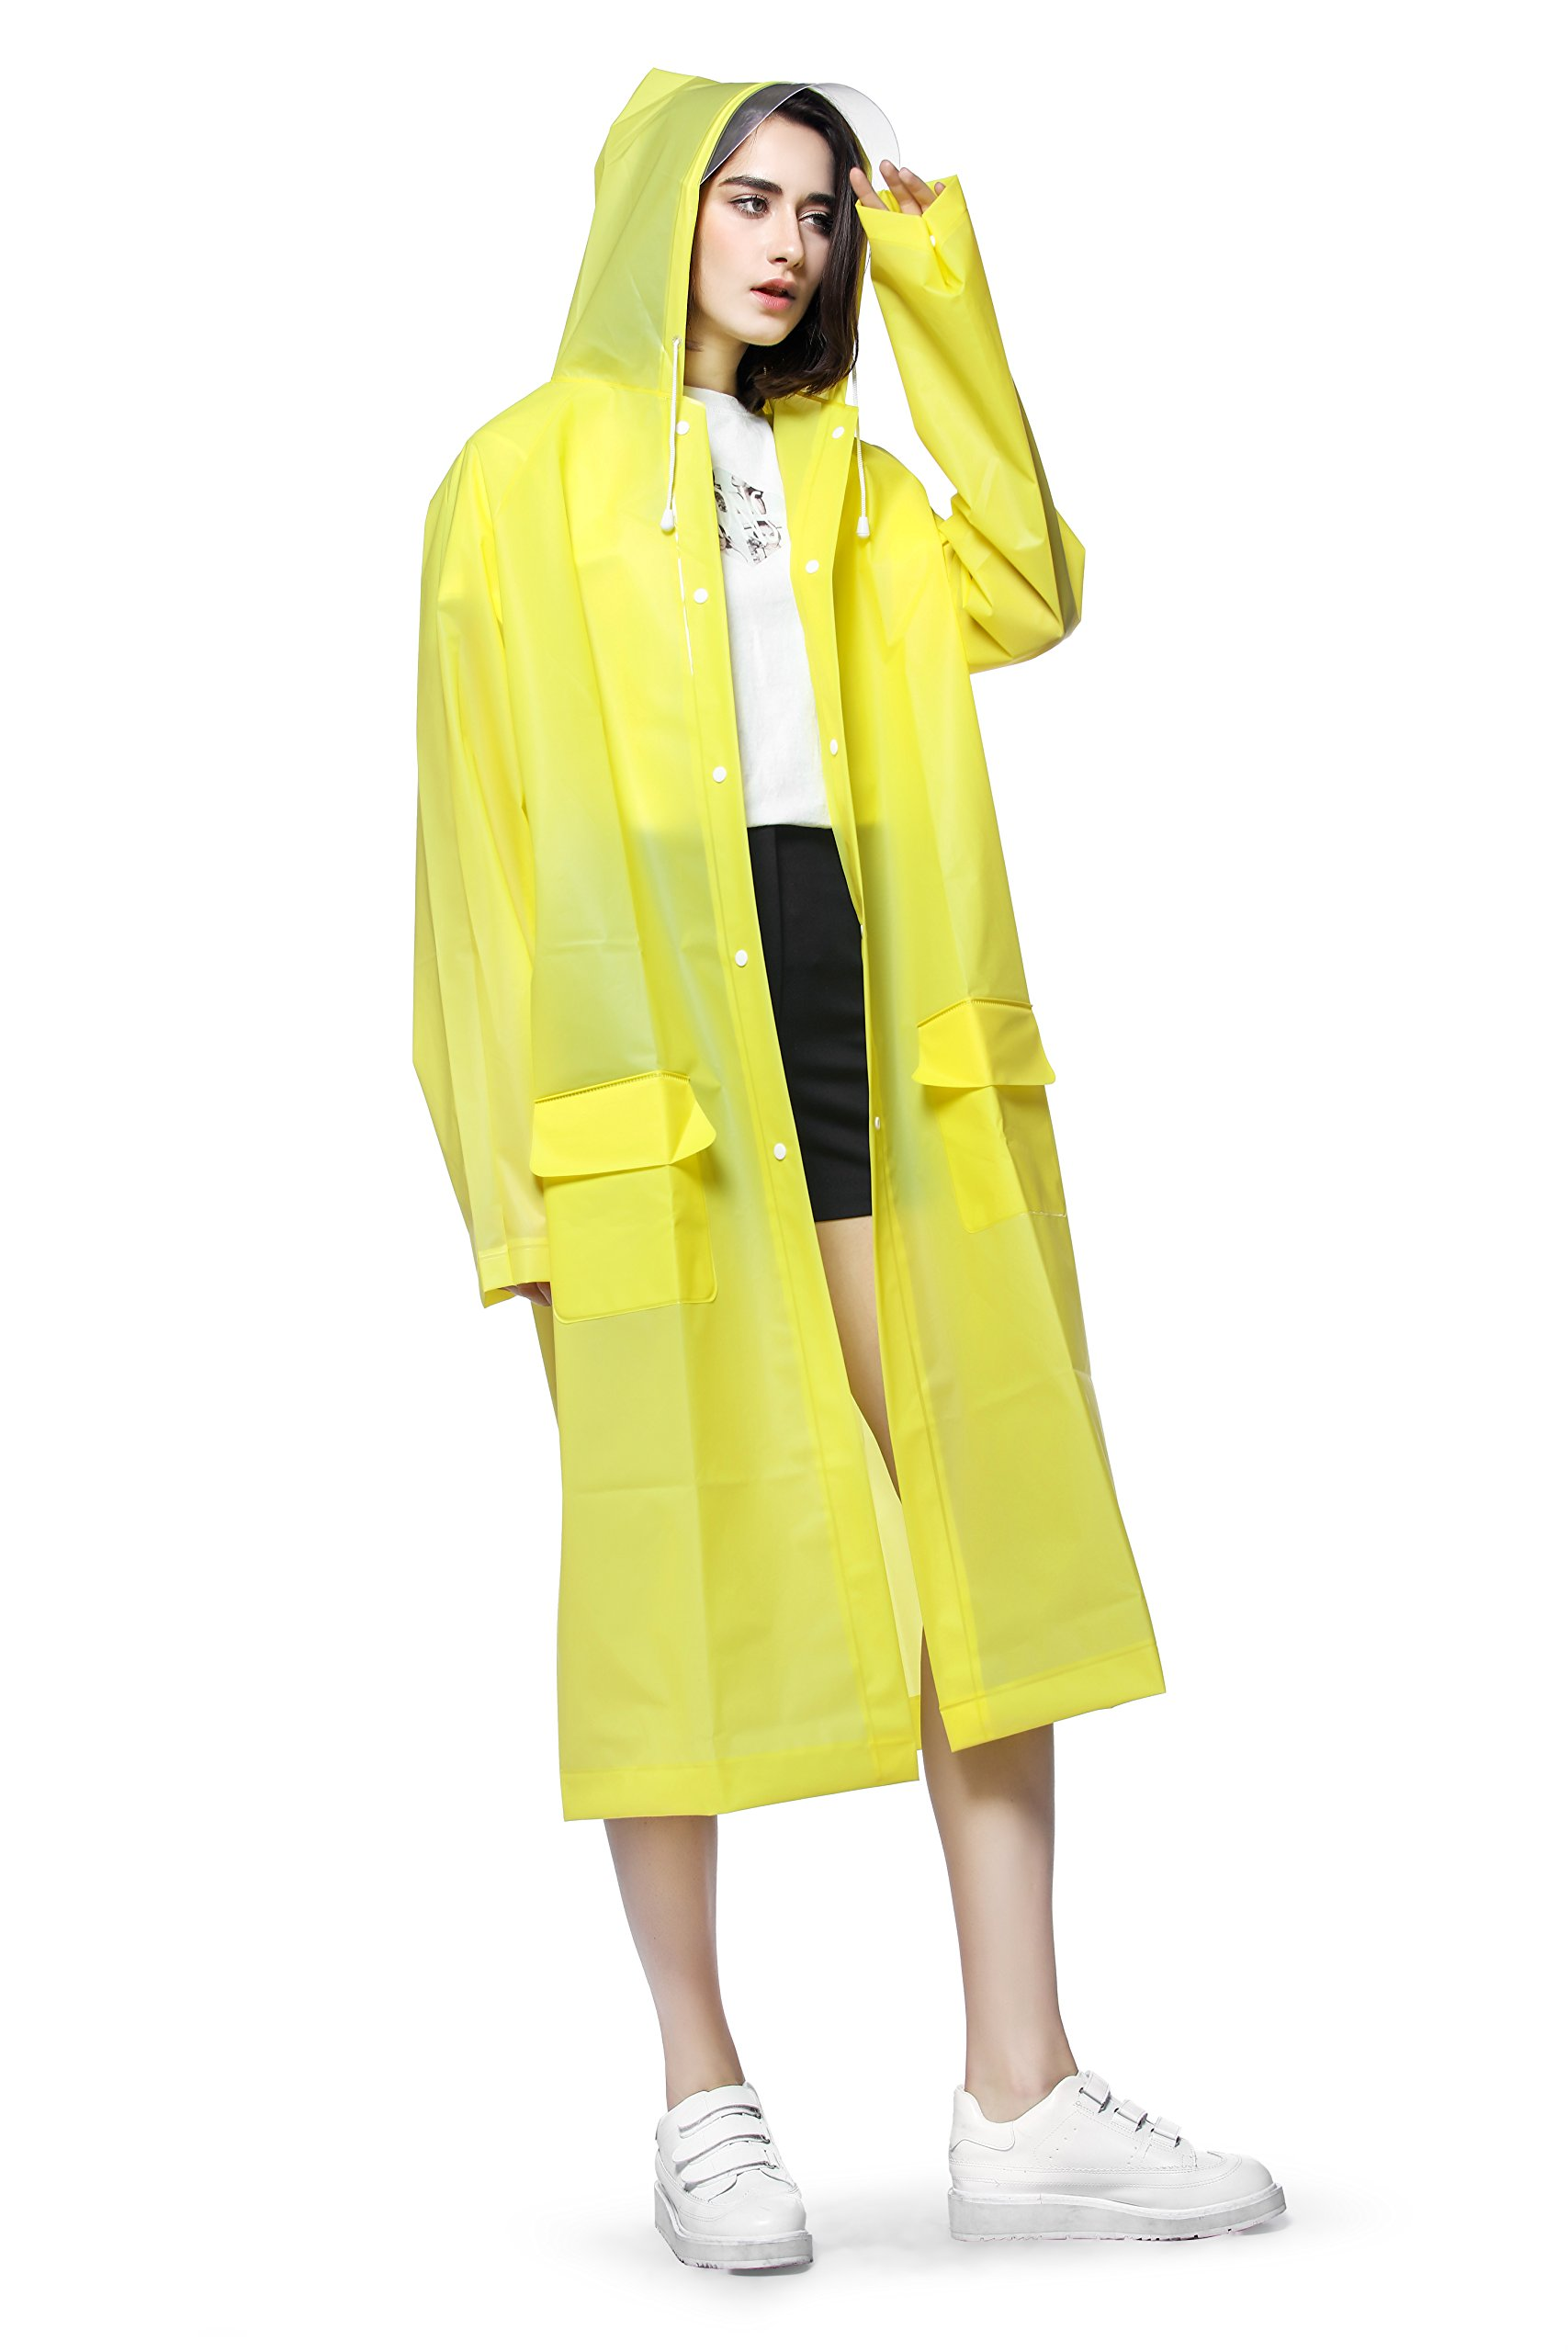 Rain Ponchos for Adults Long Rain Jacket Rain Coat for women man Rain Wear Cape Reusable unisex with Hood Strip 0.25mm More Thicker Durability Worth Every Your Penny (Yellow, XL) by Fantasi